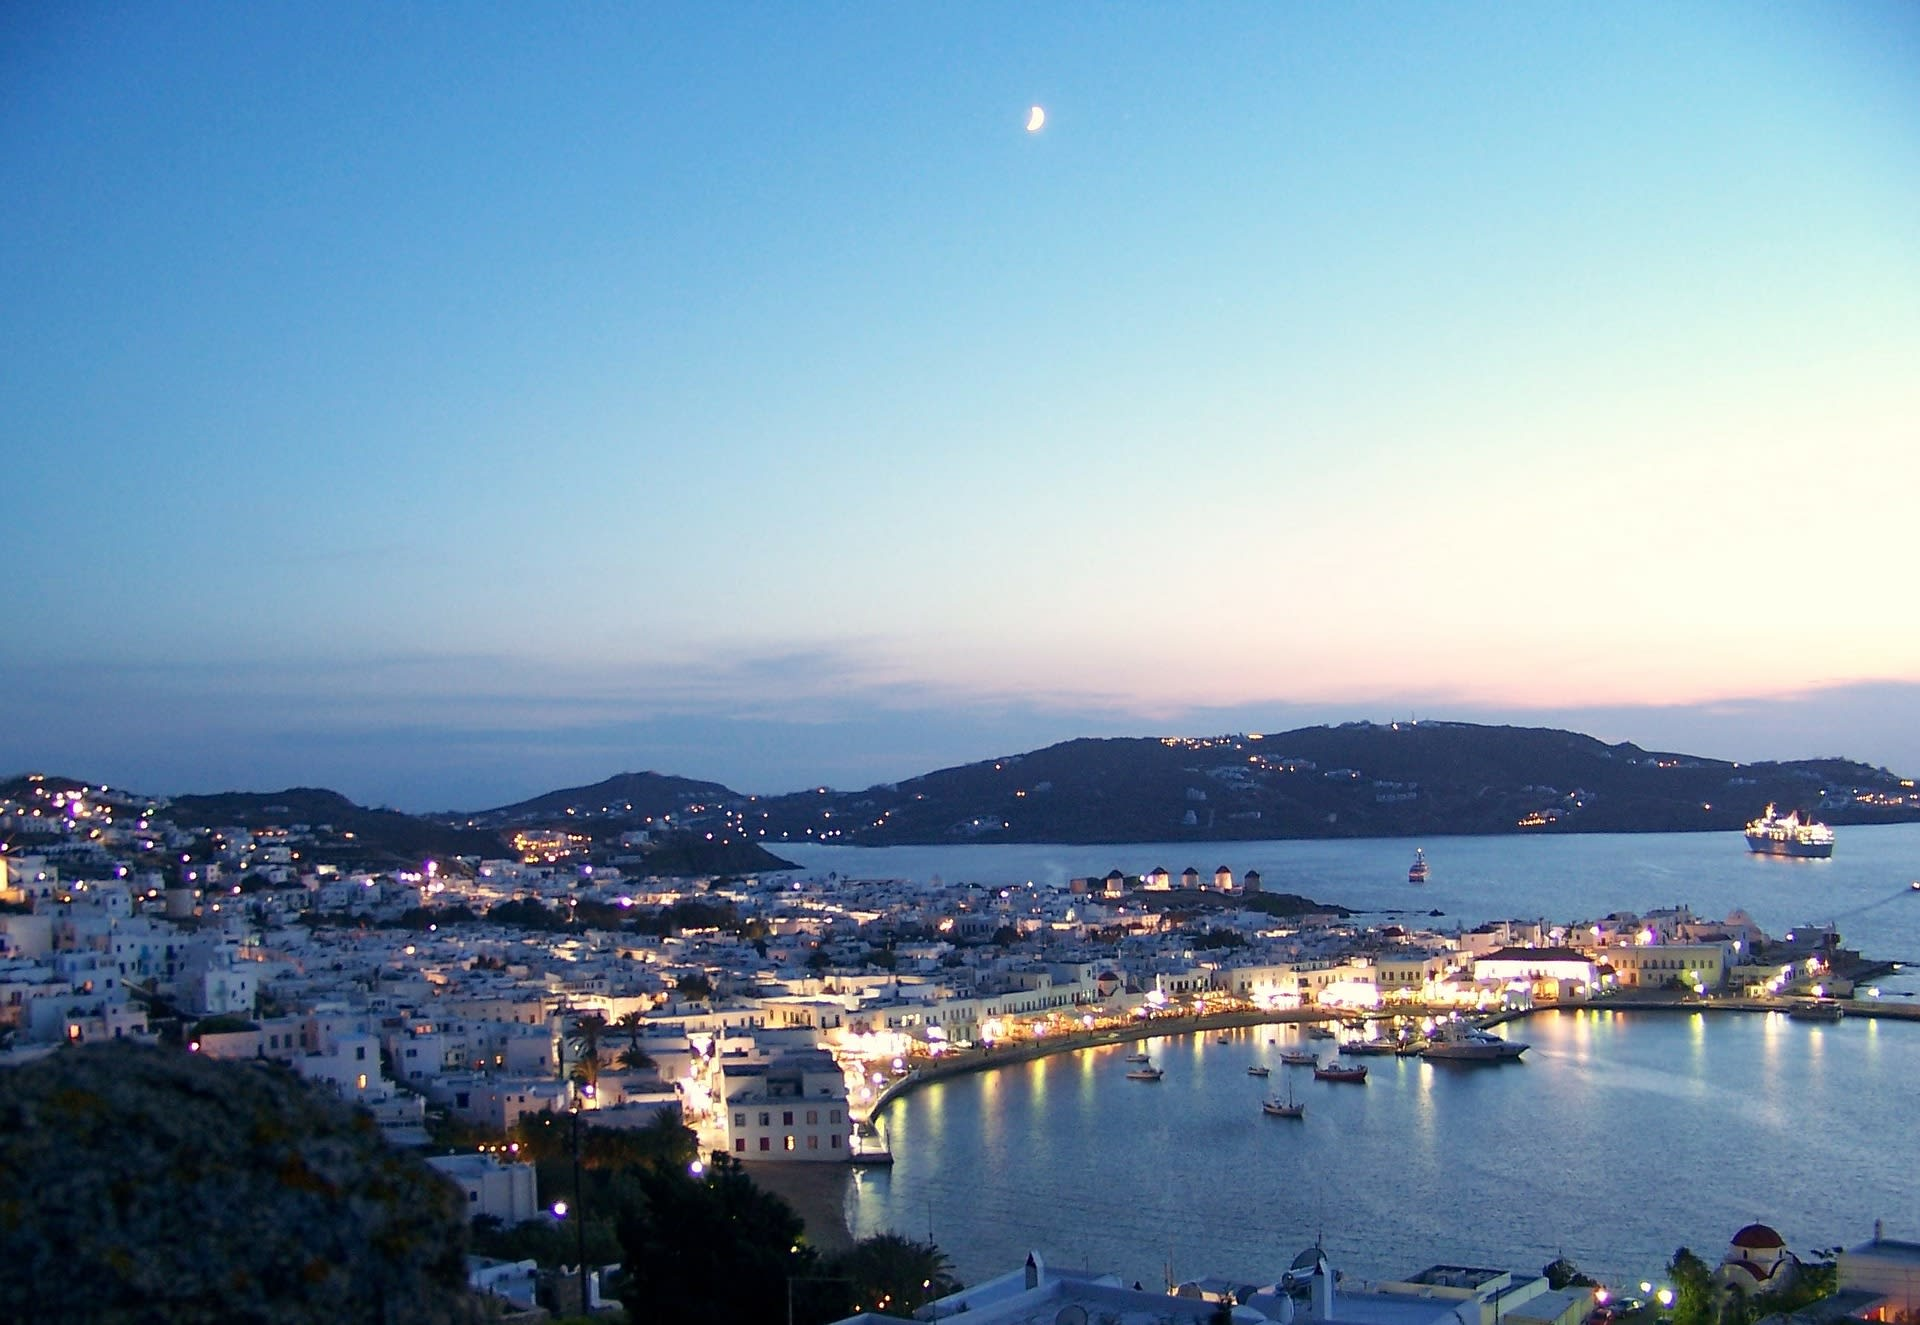 Best Party Islands World Mykonos Greece Ocean Dusk